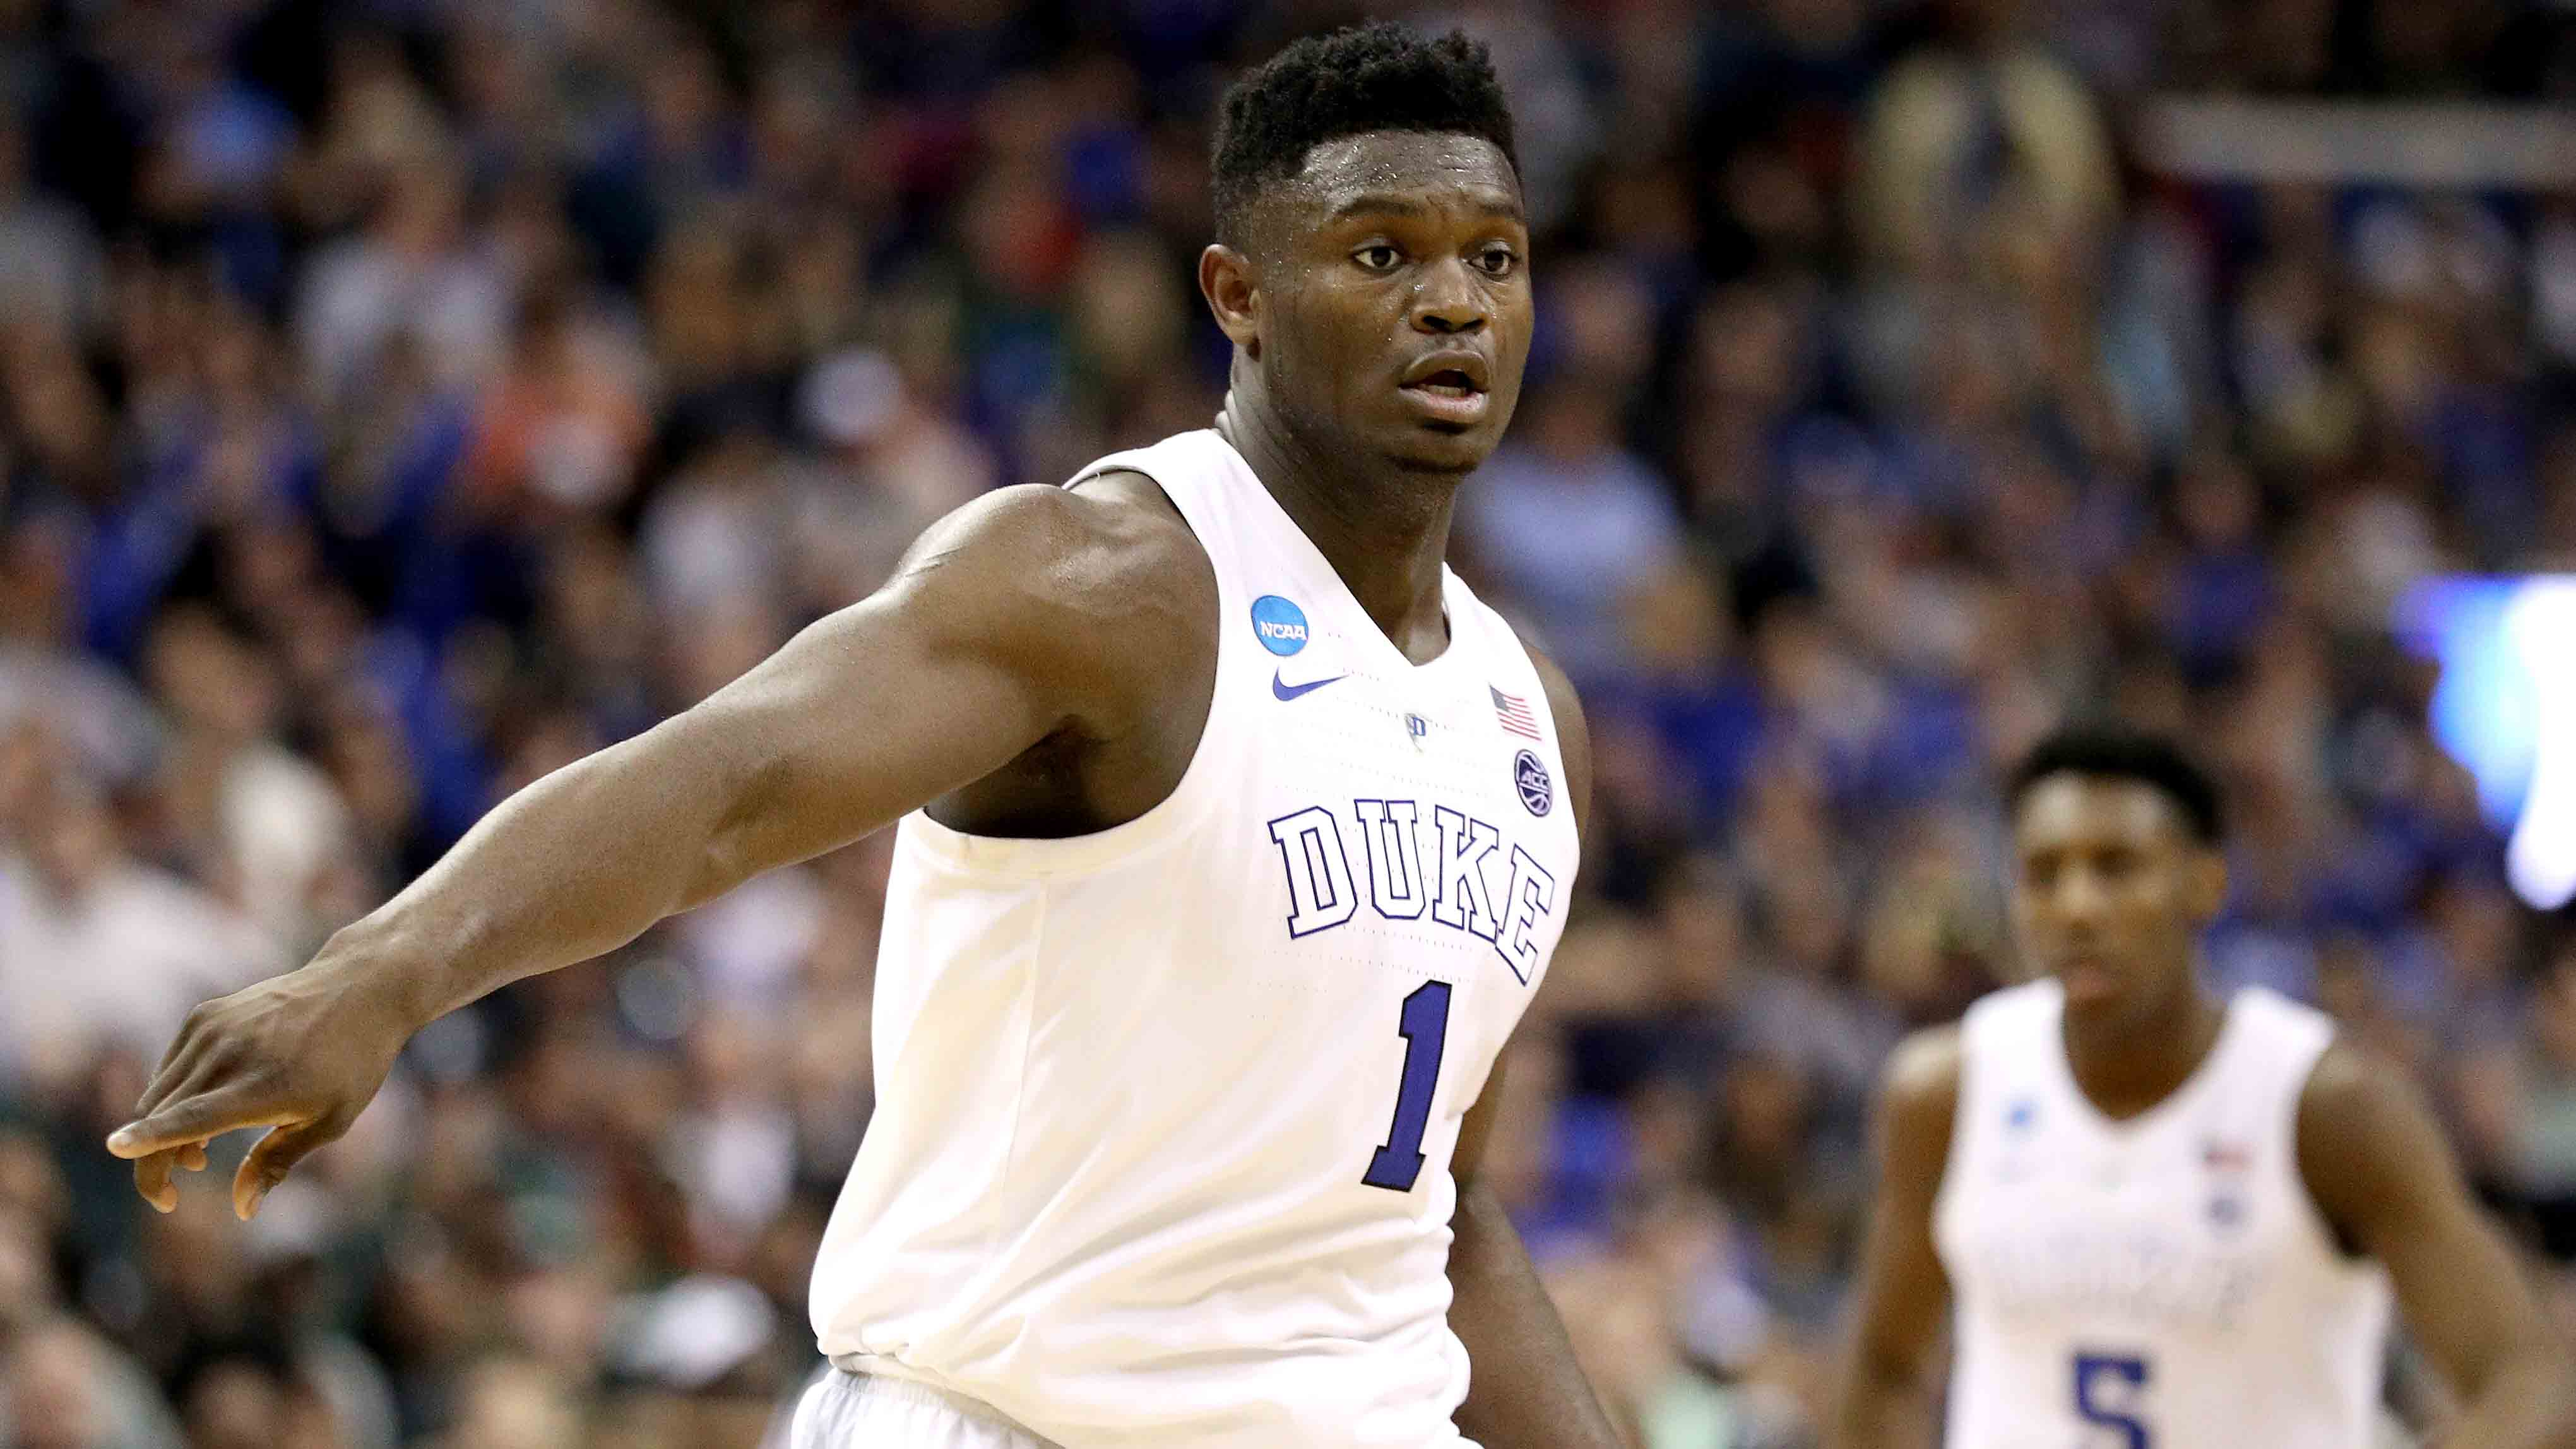 Zion Williamson Enters NBA Draft | WCBS Newsradio 880